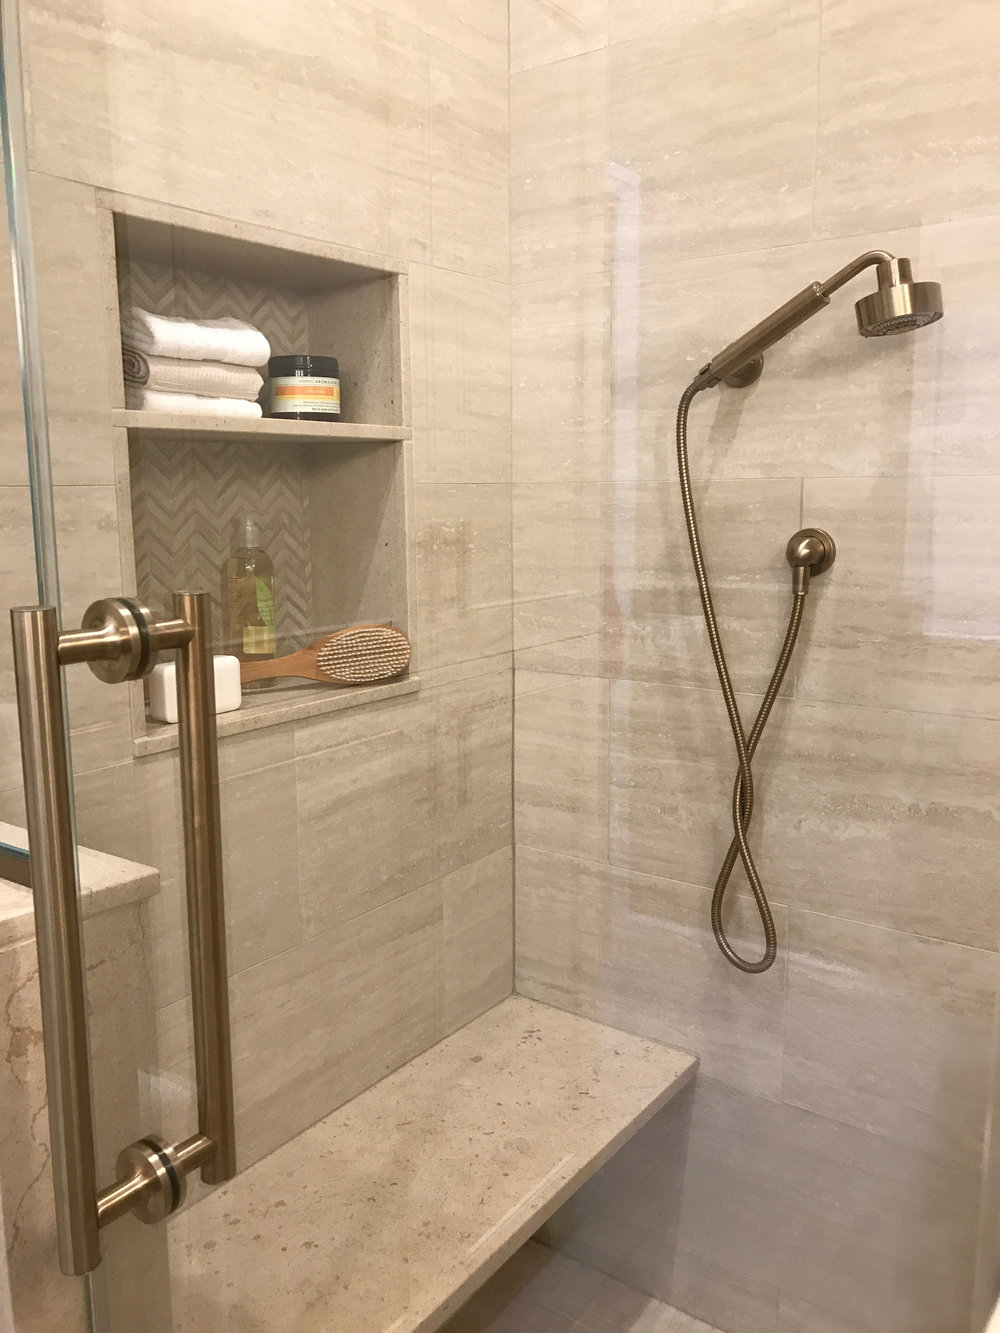 KAM Design_MasterBath_Shower_Niche_GlassDoor_Pleasantville_2017 - 17.jpg